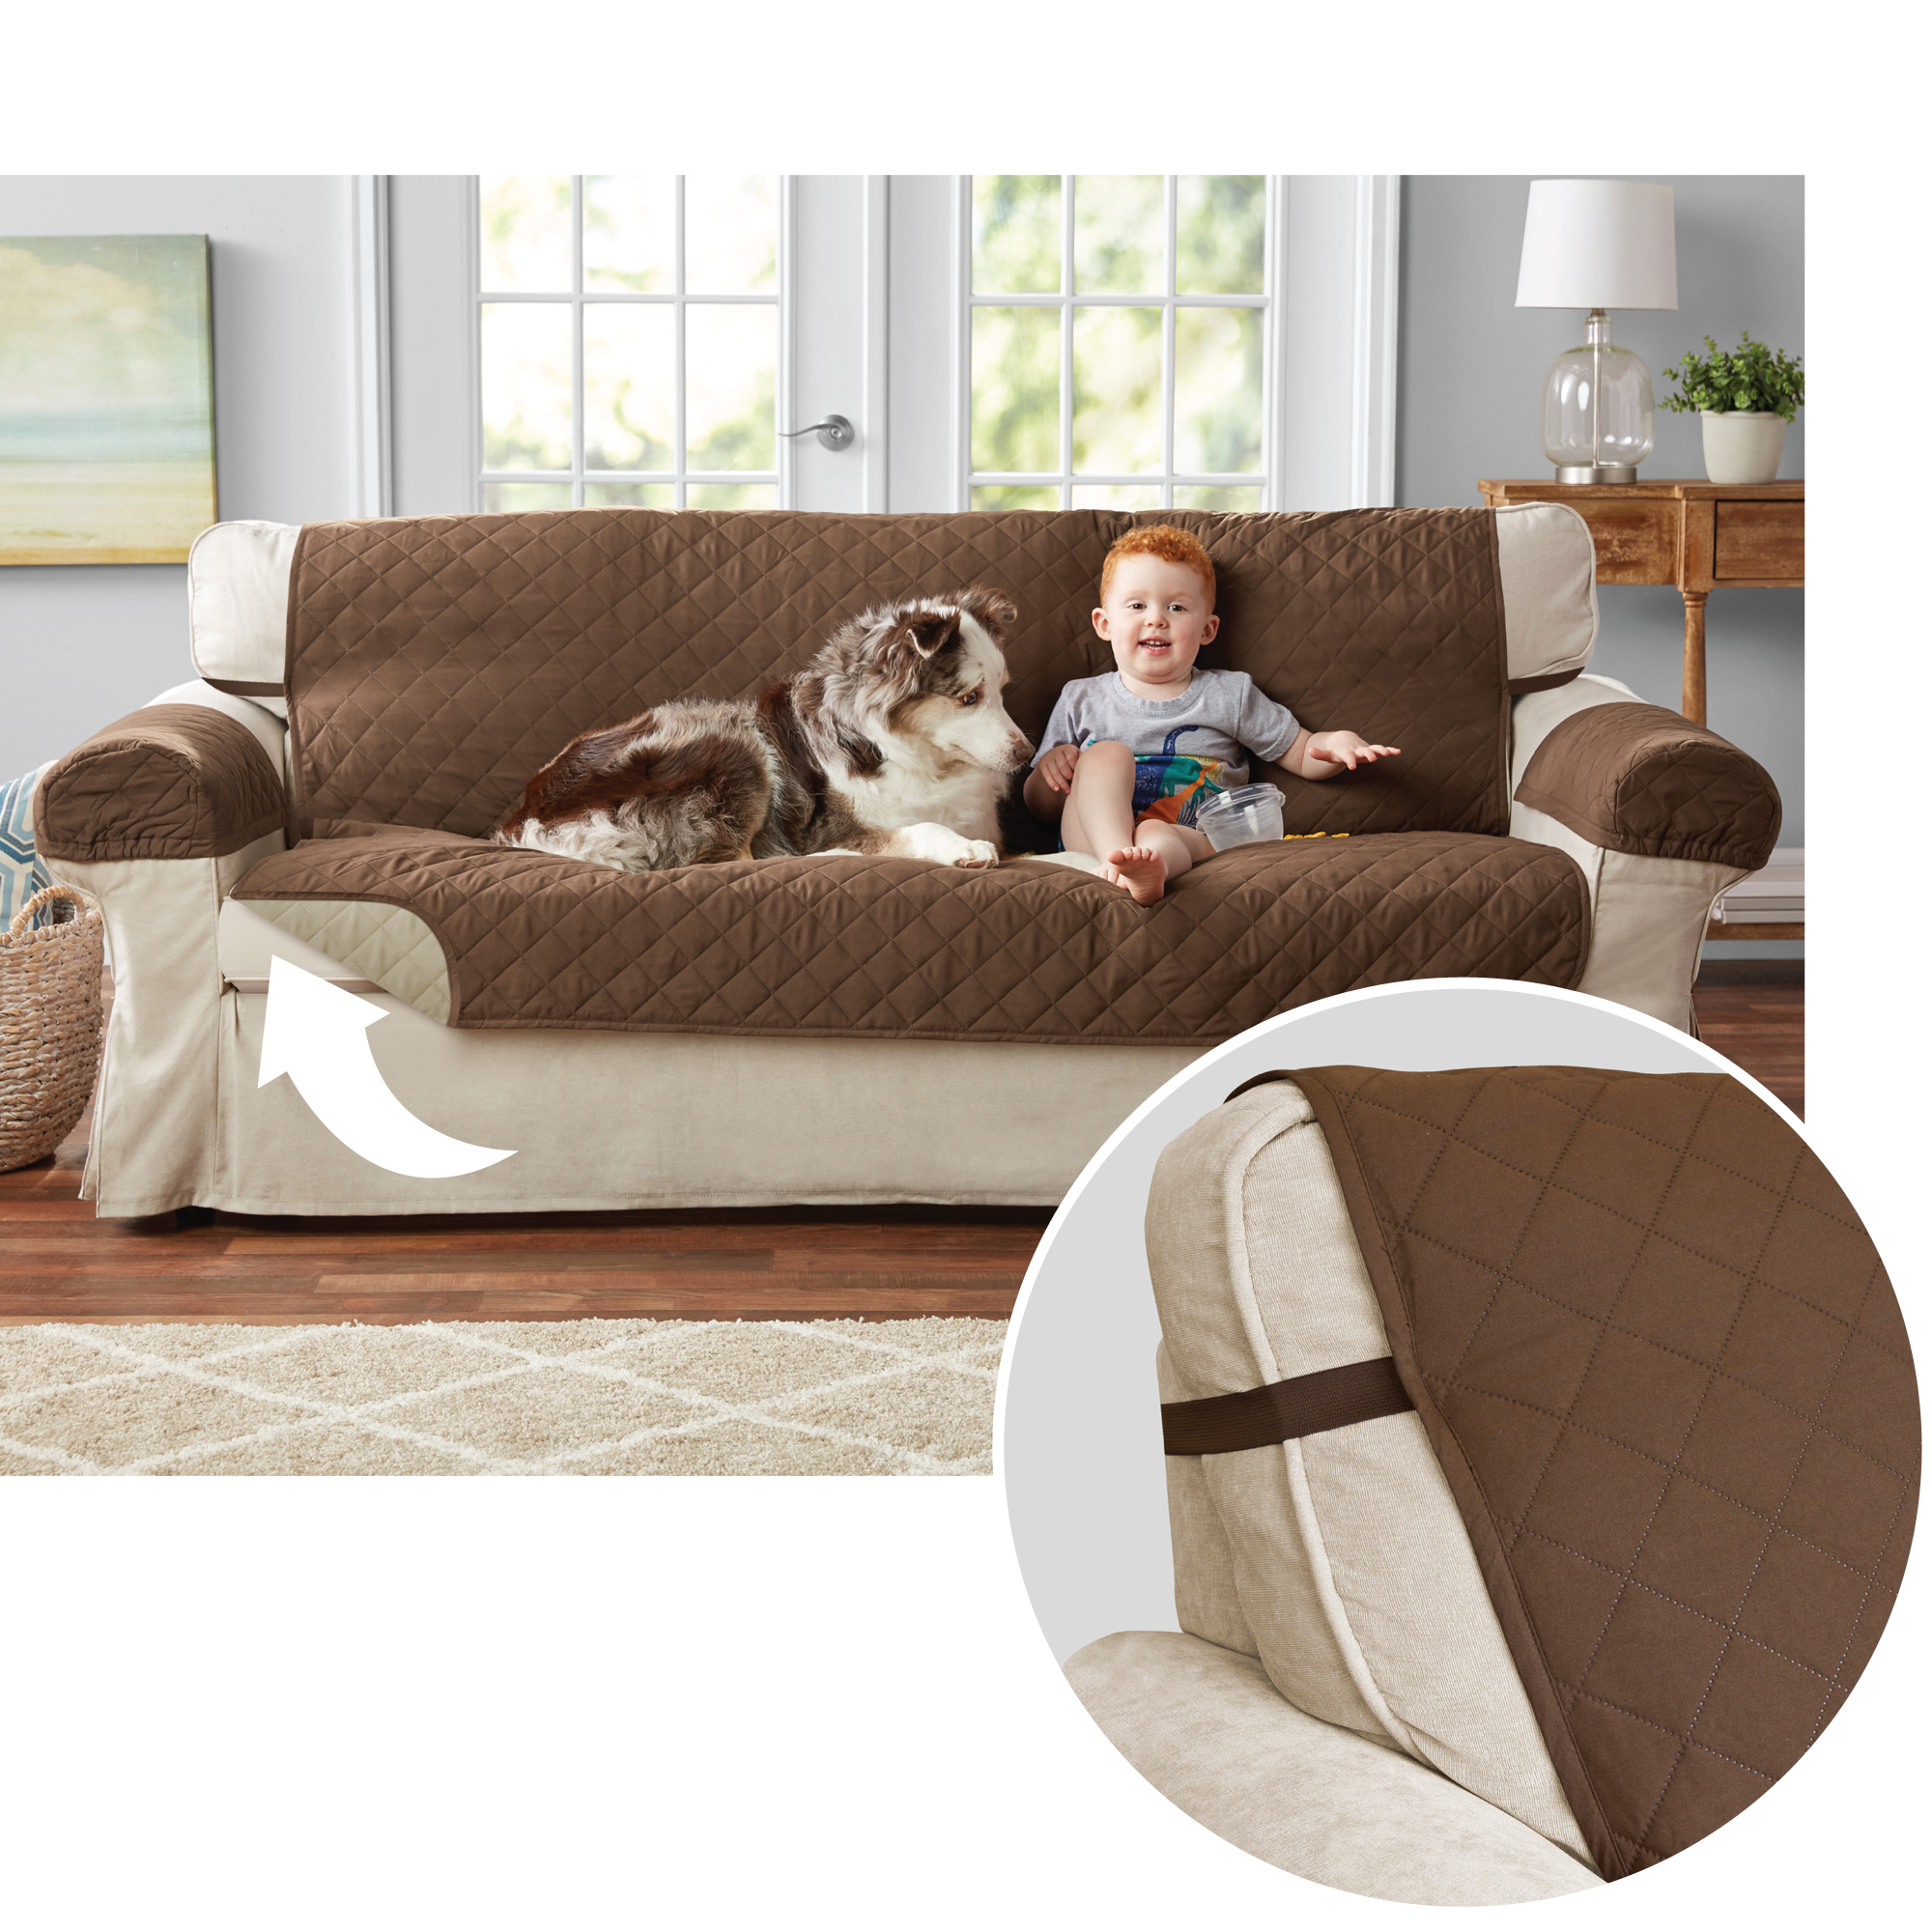 3 Piece Sectional Couch Covers Walmart: Mainstays Reversible 3-Piece Microfiber Sofa Cover